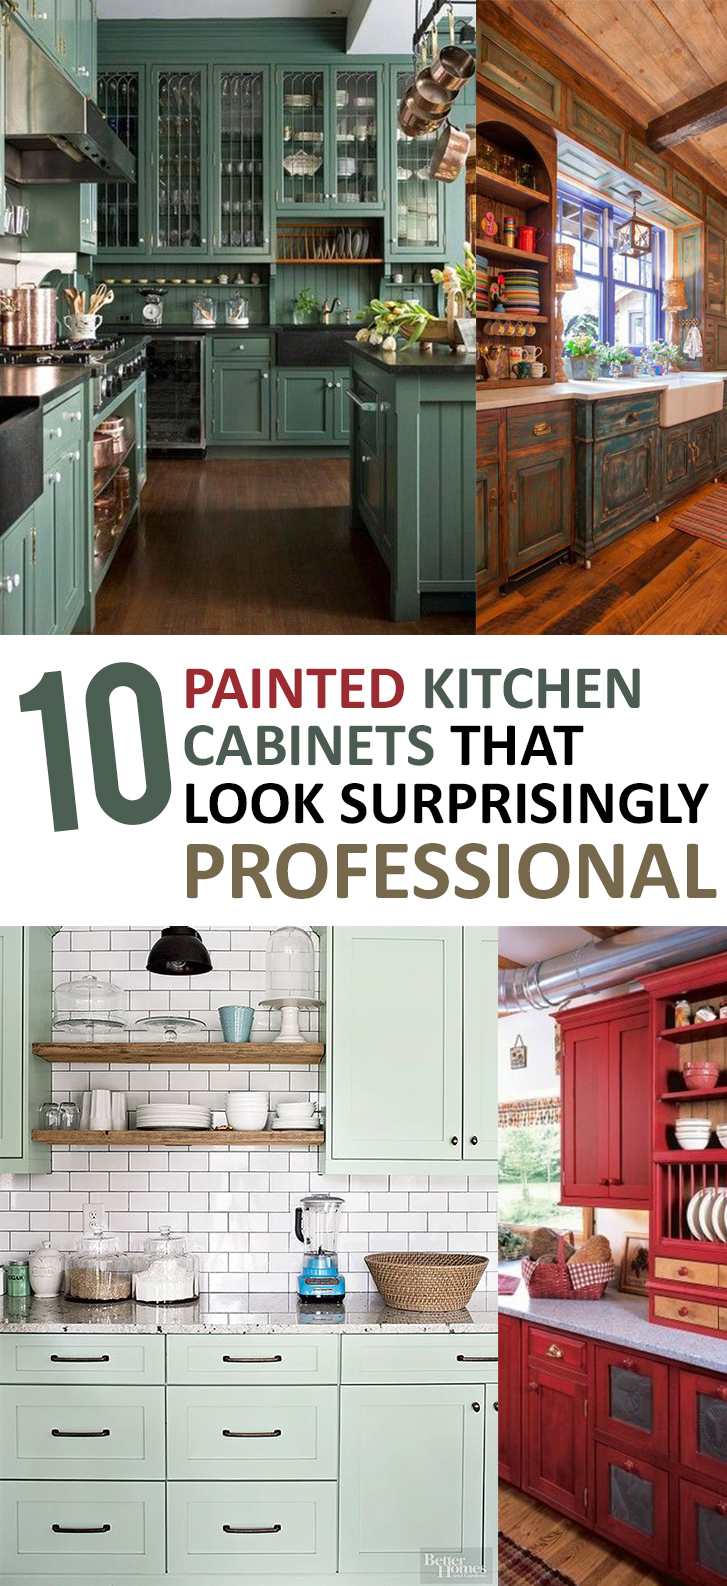 11 DIY Kitchen Cabinets that Look Surprisingly Professional -